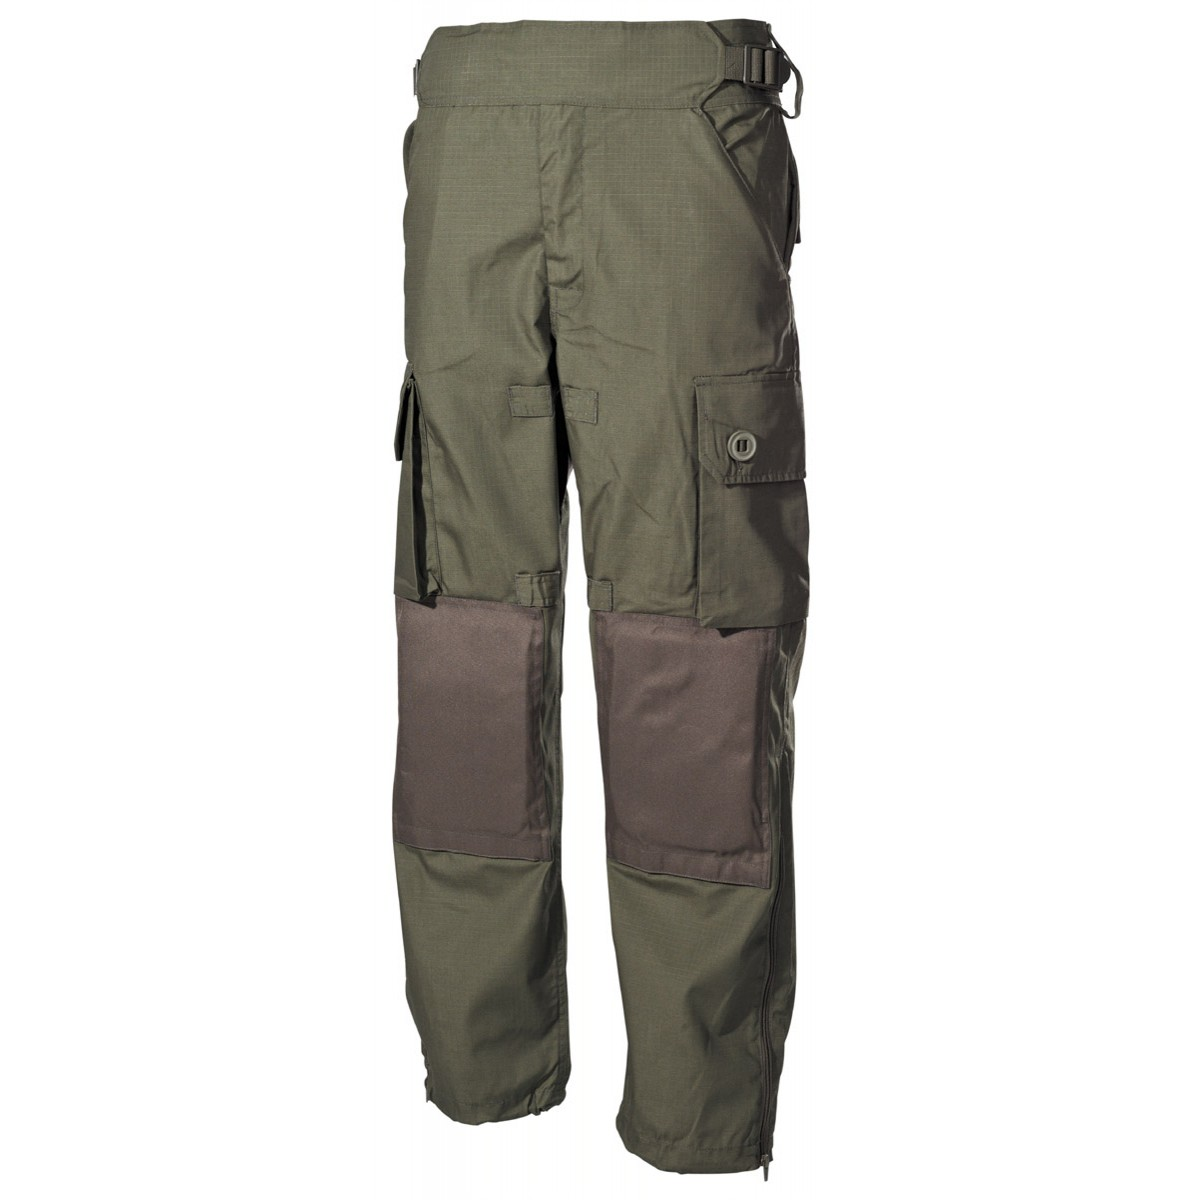 Premium Tactical Military Battle Trousers COMMANDOS - OD Green